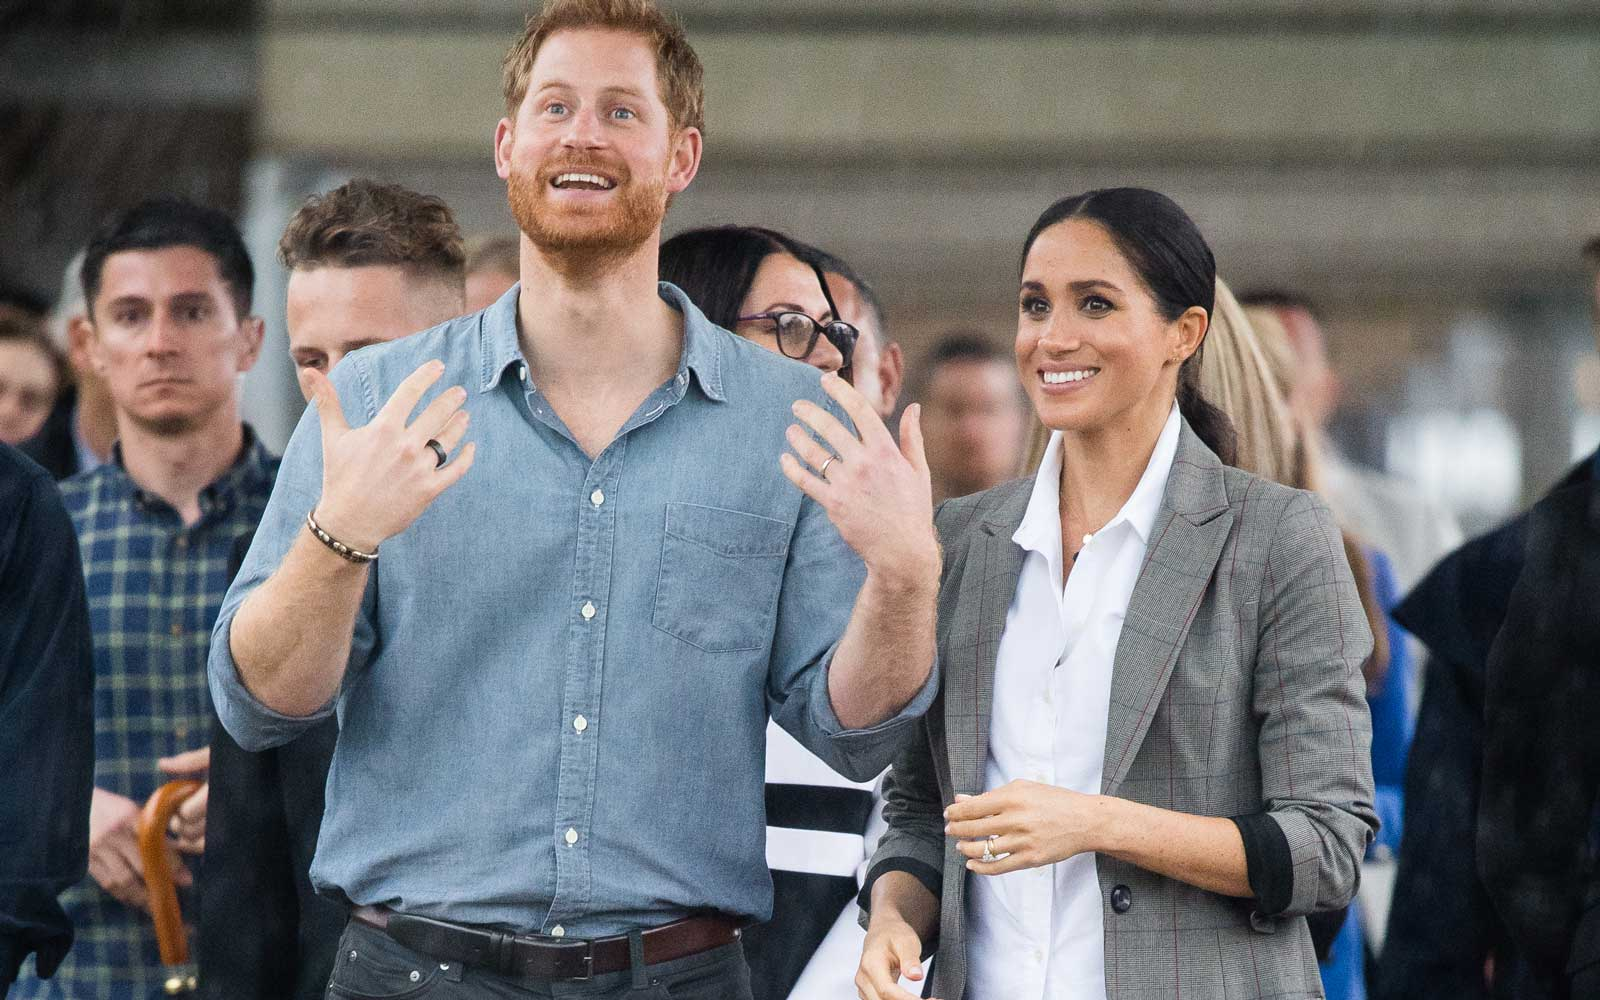 Prince Harry Opened Up for the First Time About His and Meghan Markle's Upcoming Baby